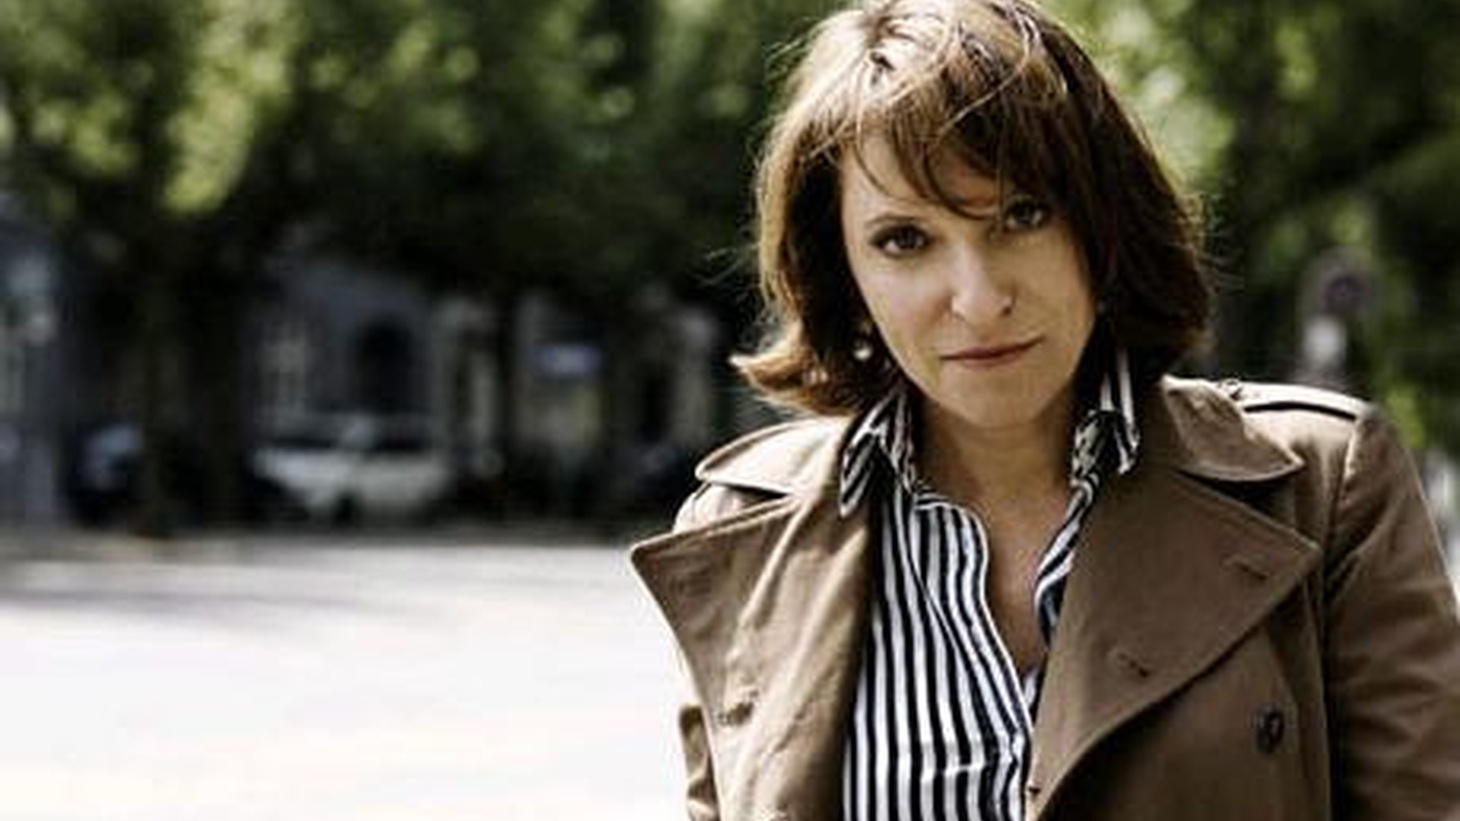 Susanne Bier (Brothers, After the Wedding, Things We Lost in the Fire, Open Hearts), Oscar-winning director of In a Better World, talks about the delicate dance of interacting with an audience.